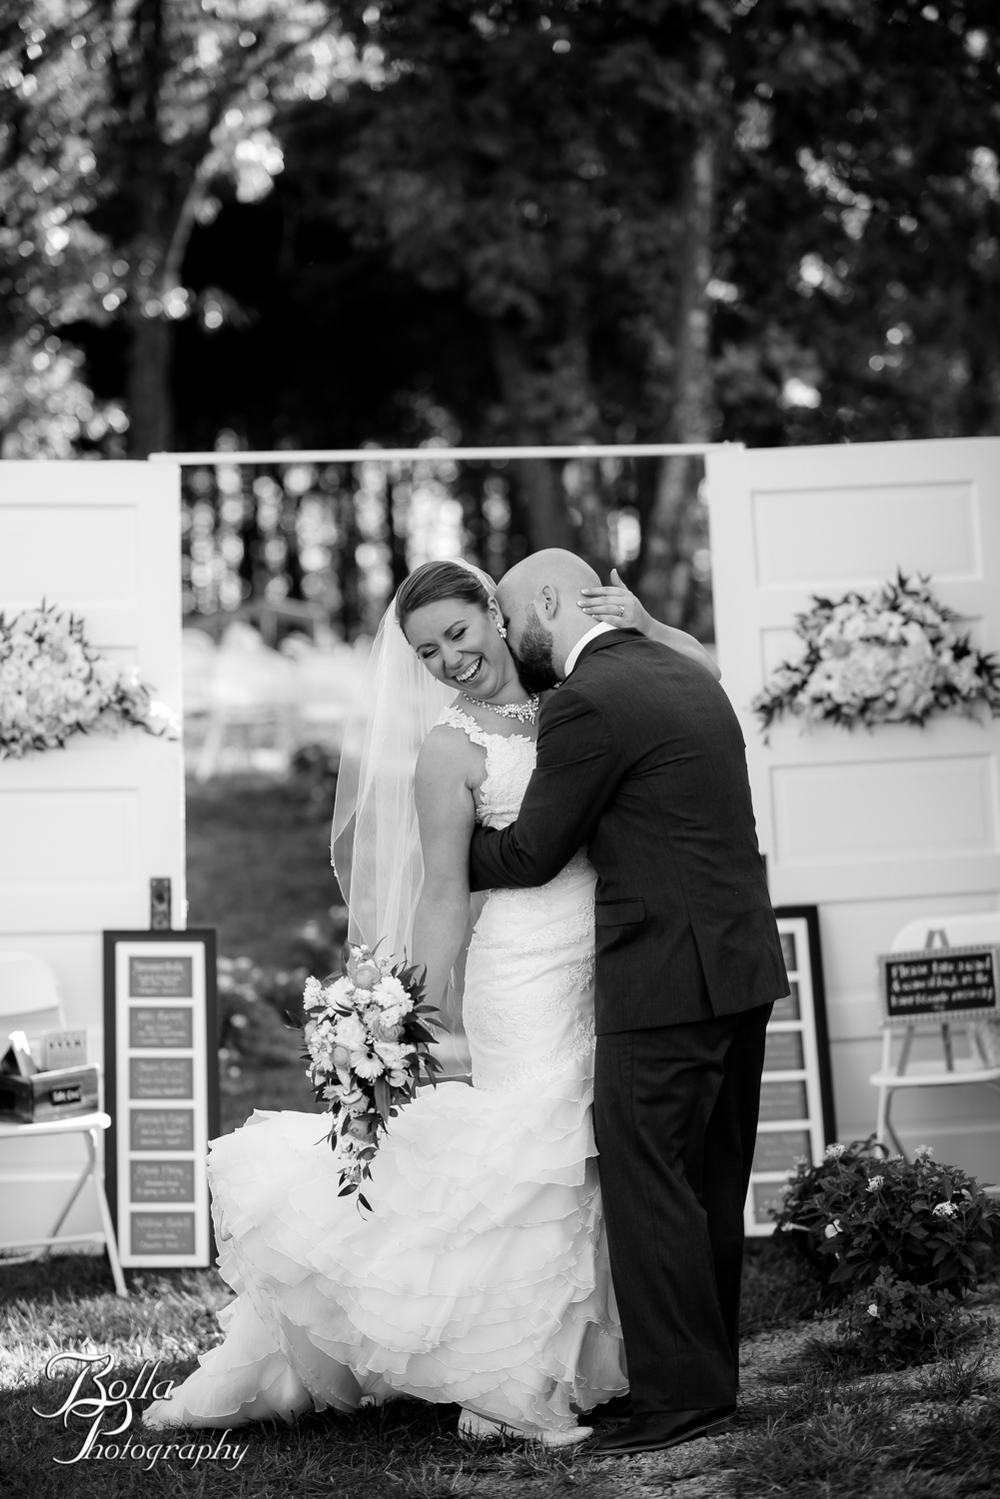 Bolla_Photography_St_Louis_wedding_photographer-0446.jpg